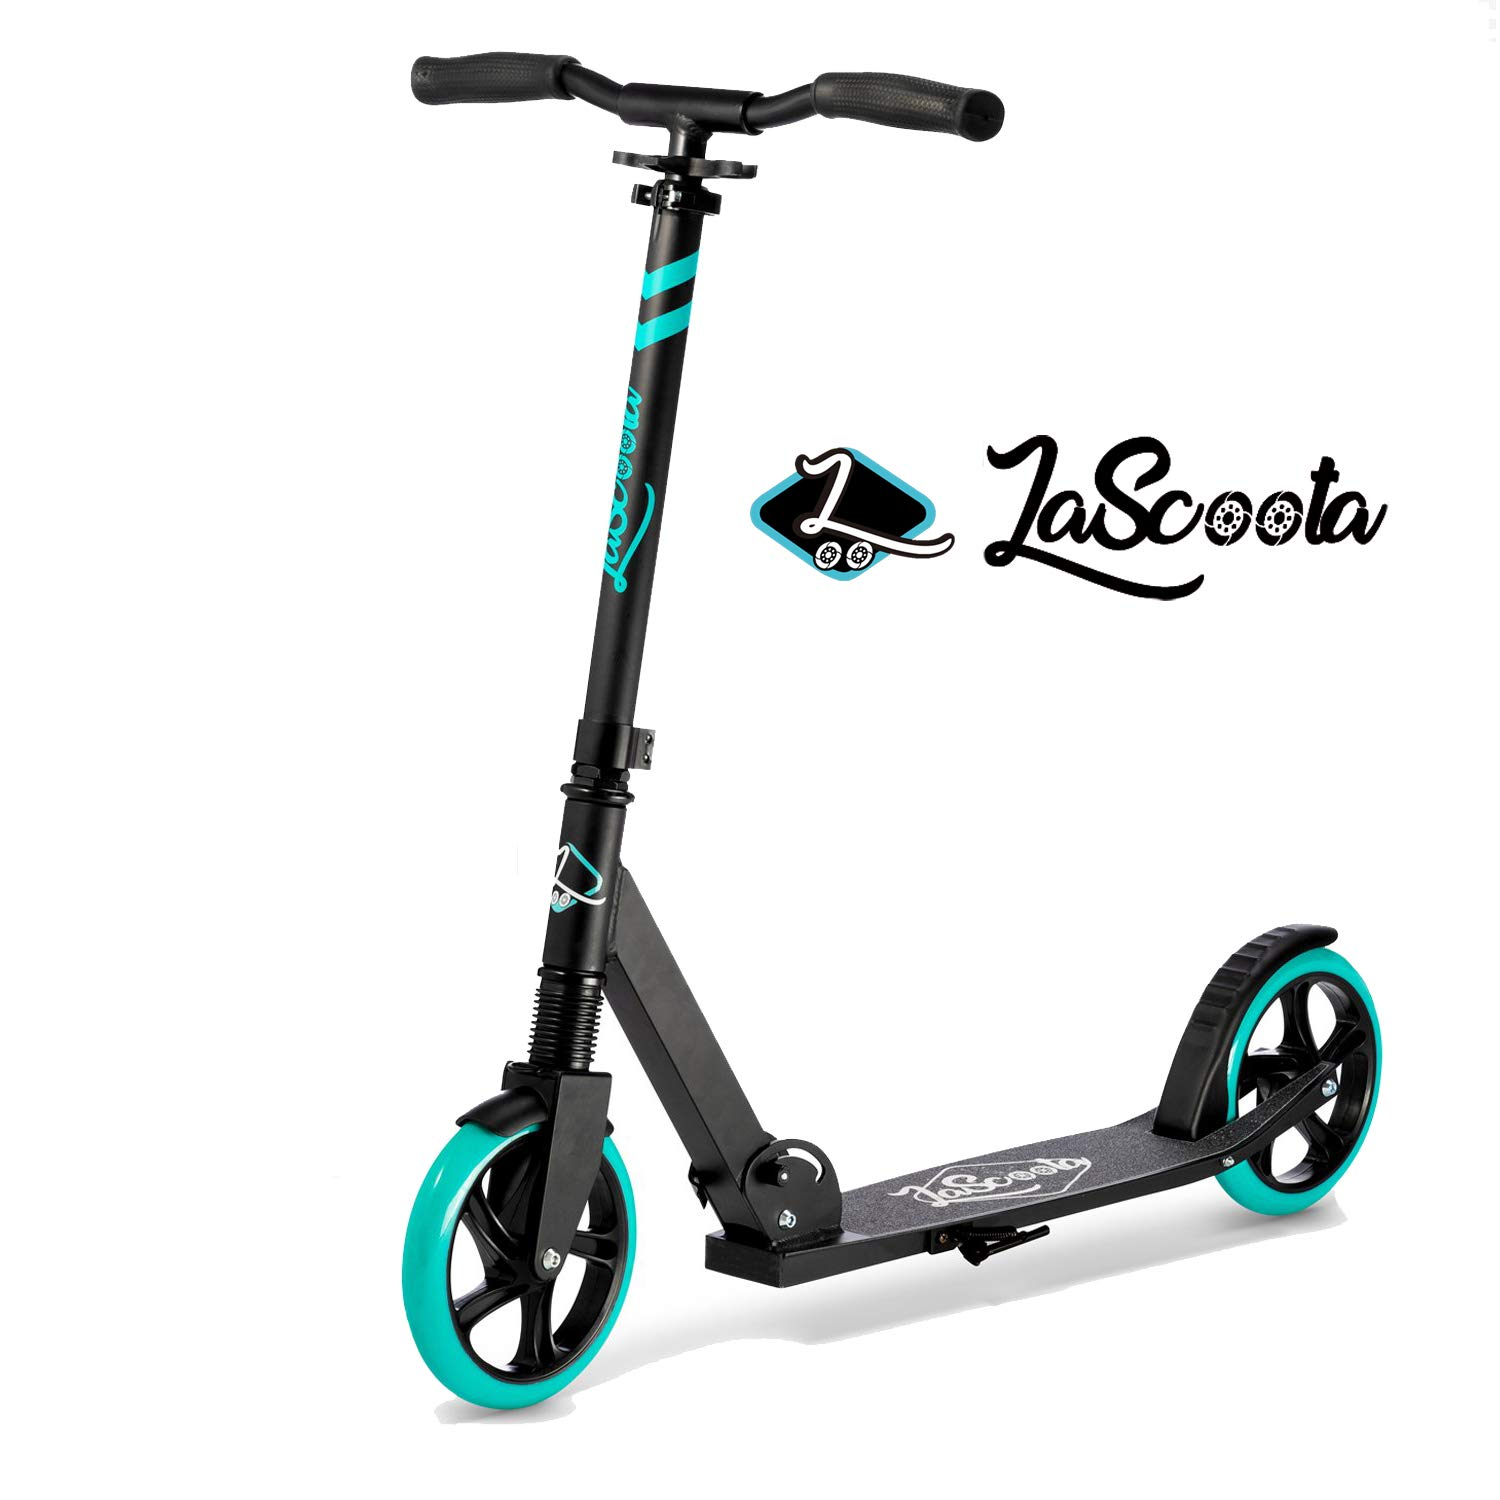 Top 10 Best Kick Scooter For Commuting - Buyer's Guide 40